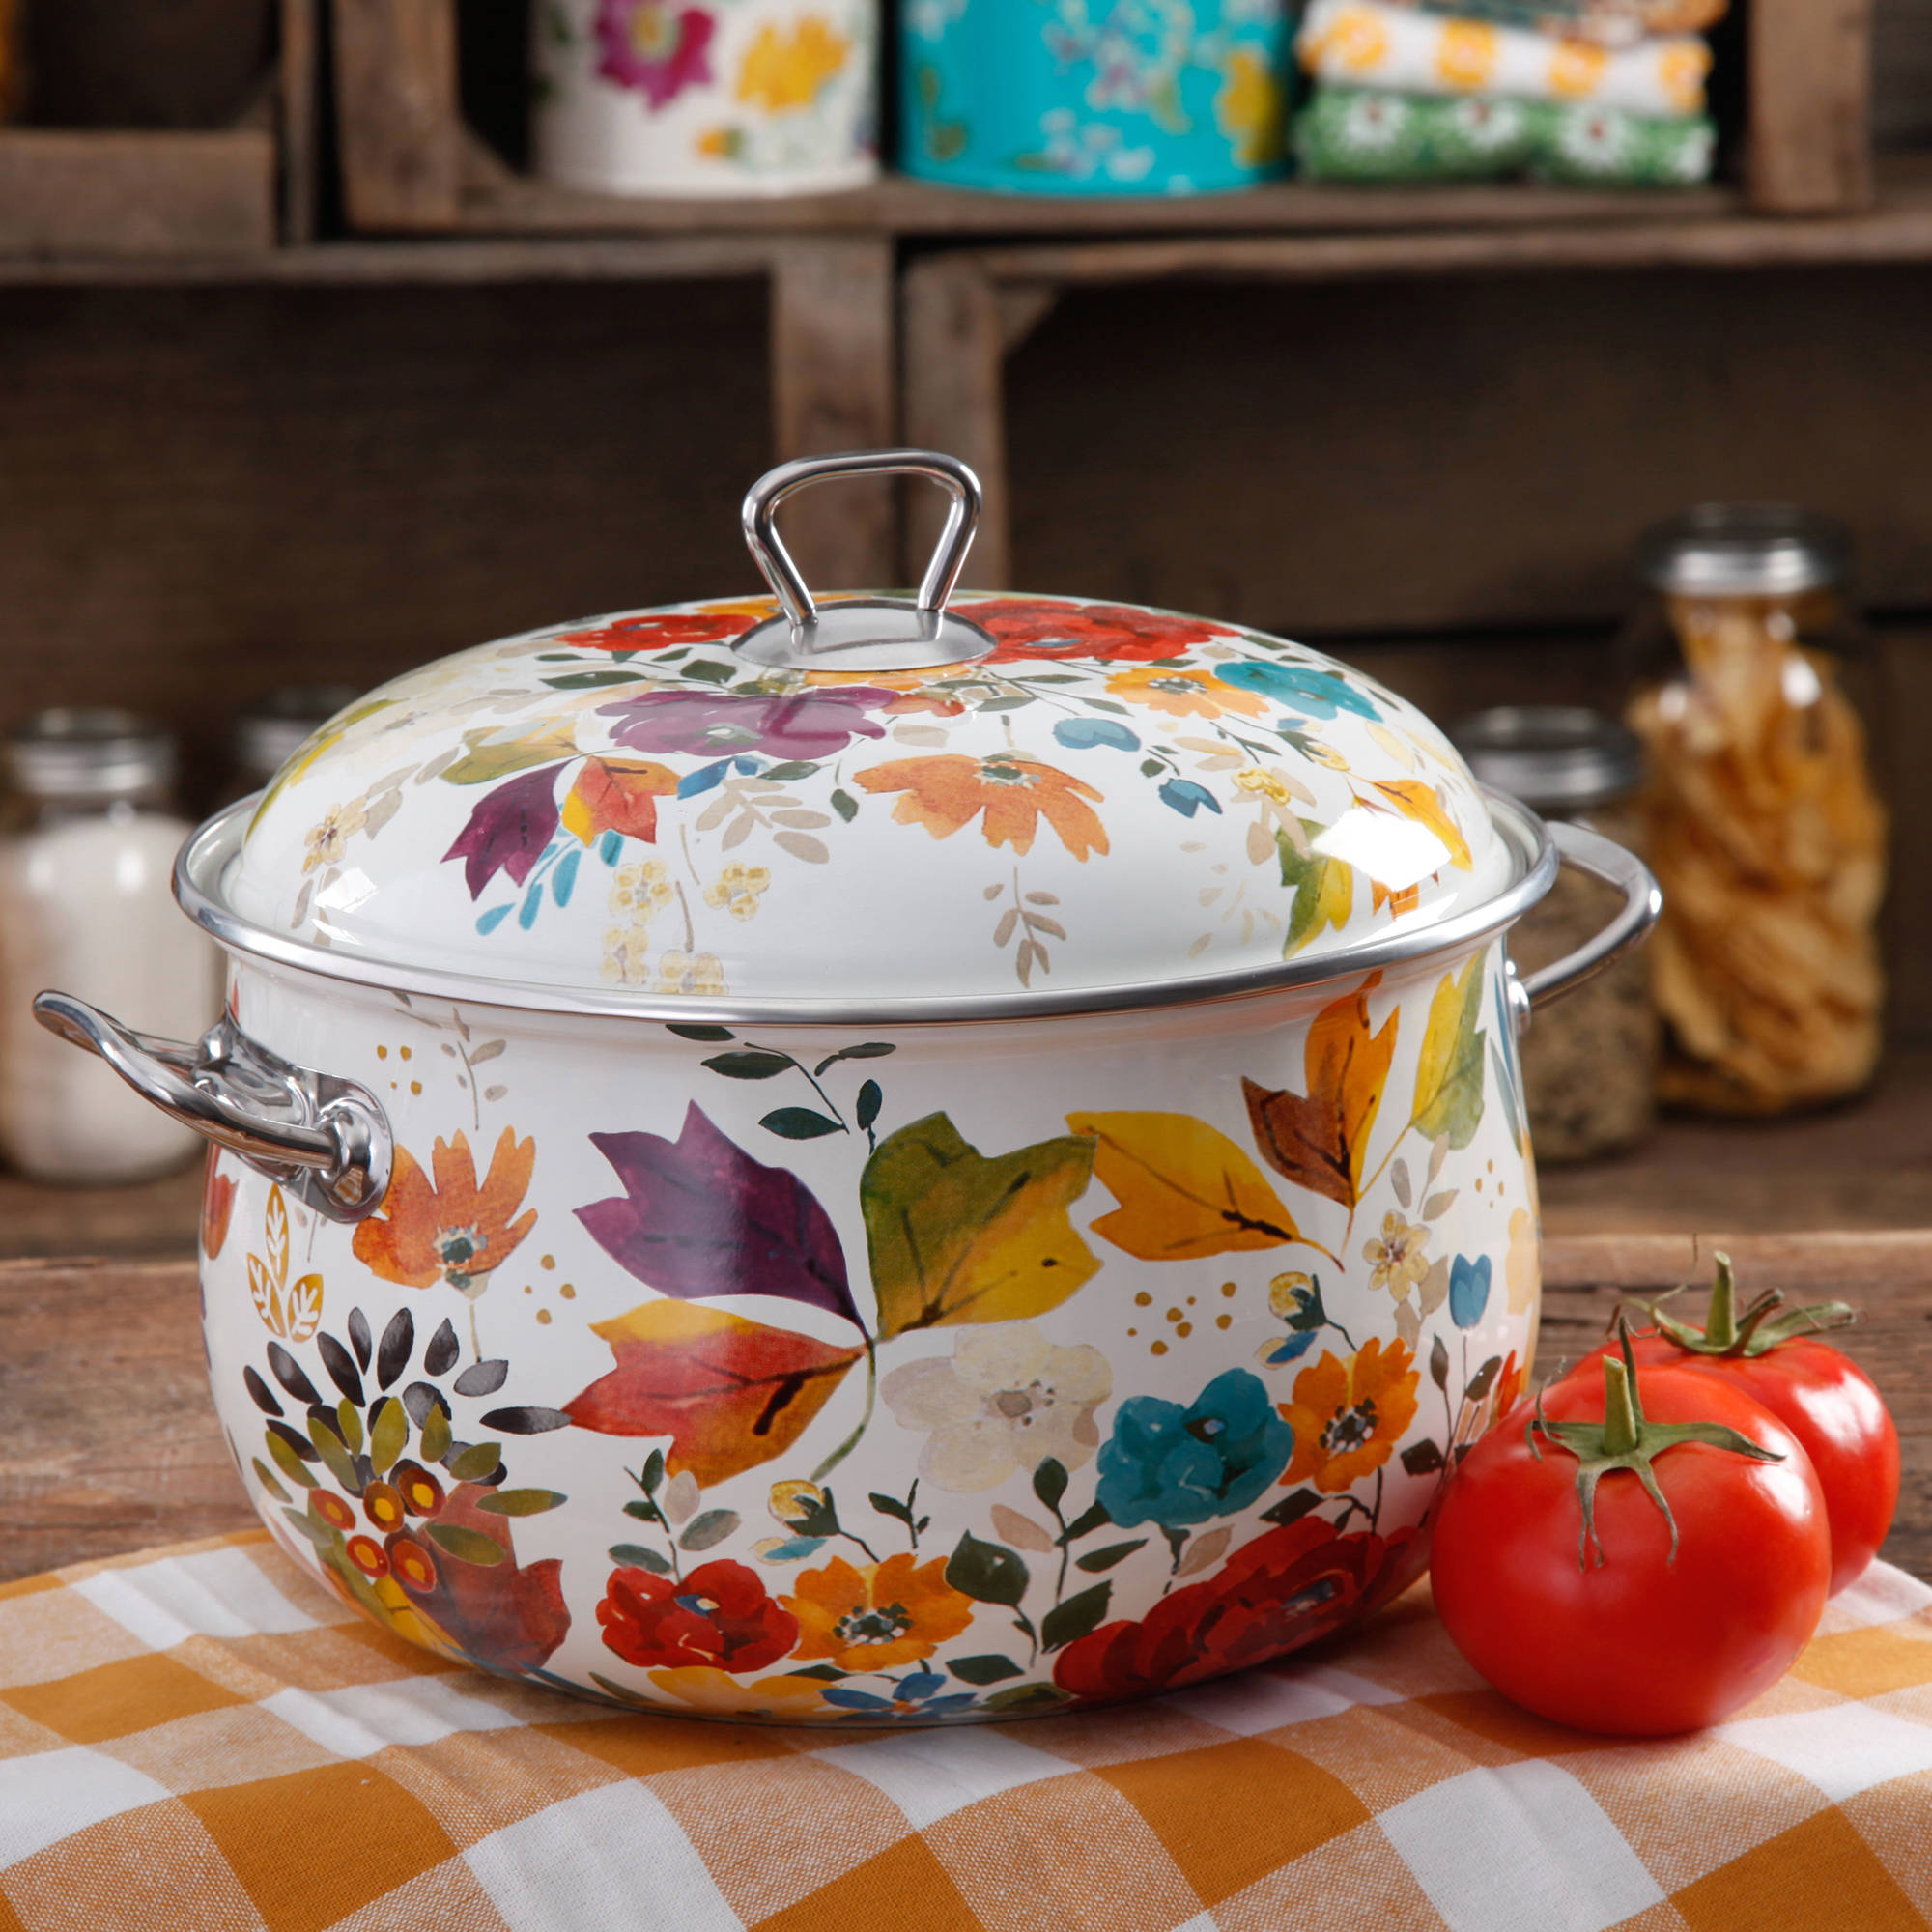 The Pioneer Woman 4-Quart Timeless Floral Casserole with Lid